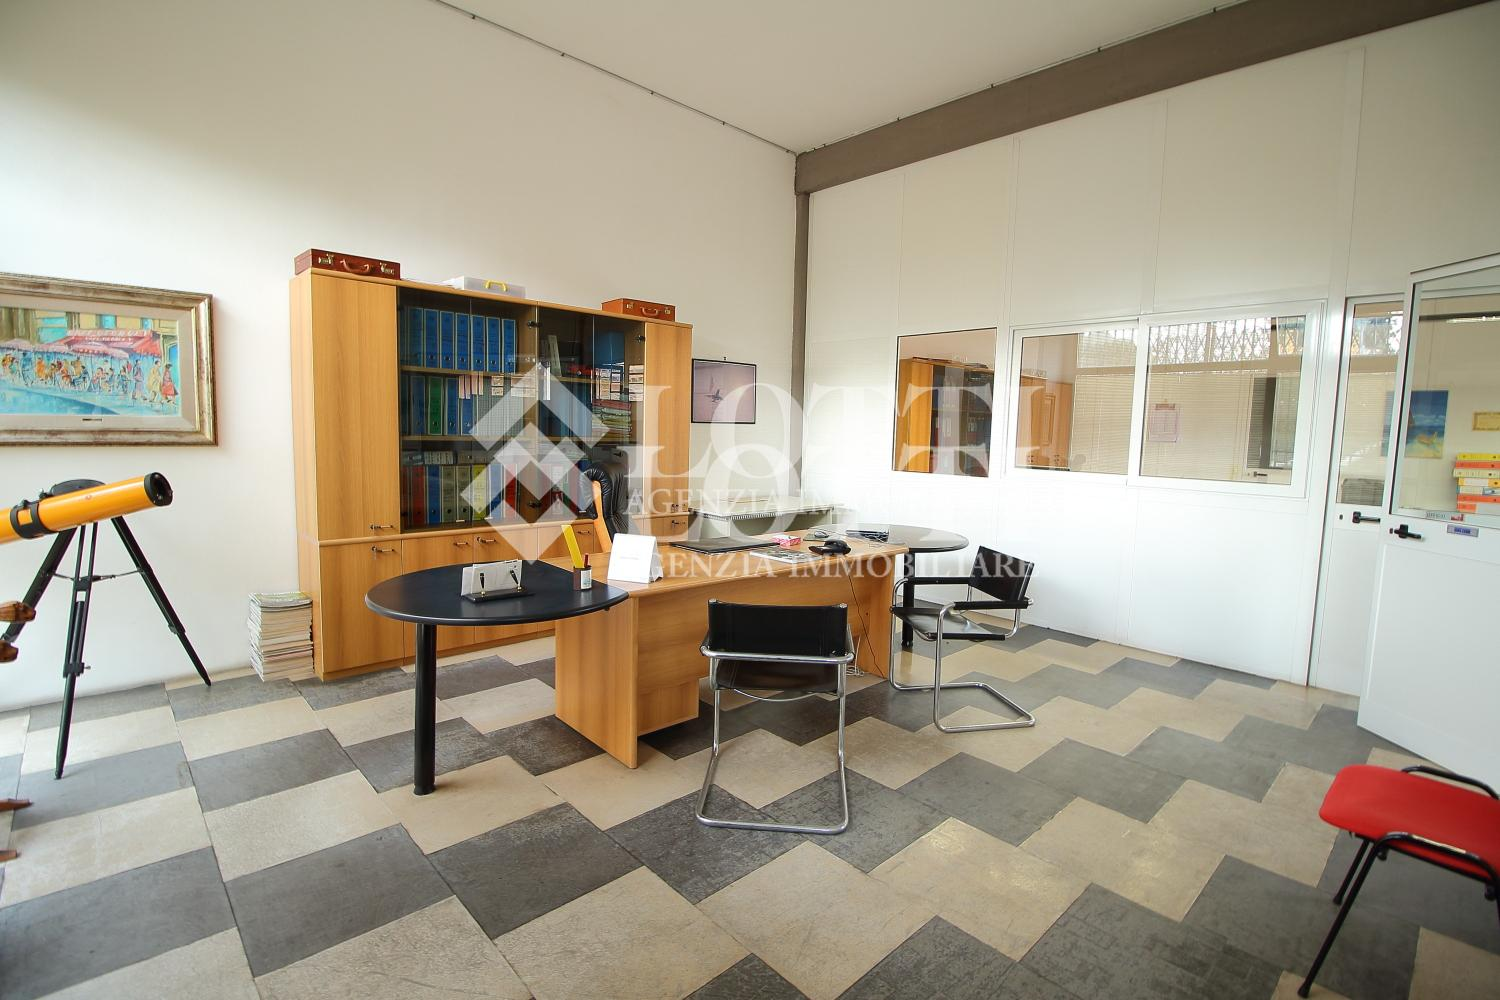 Office for rent in Bientina (PI)